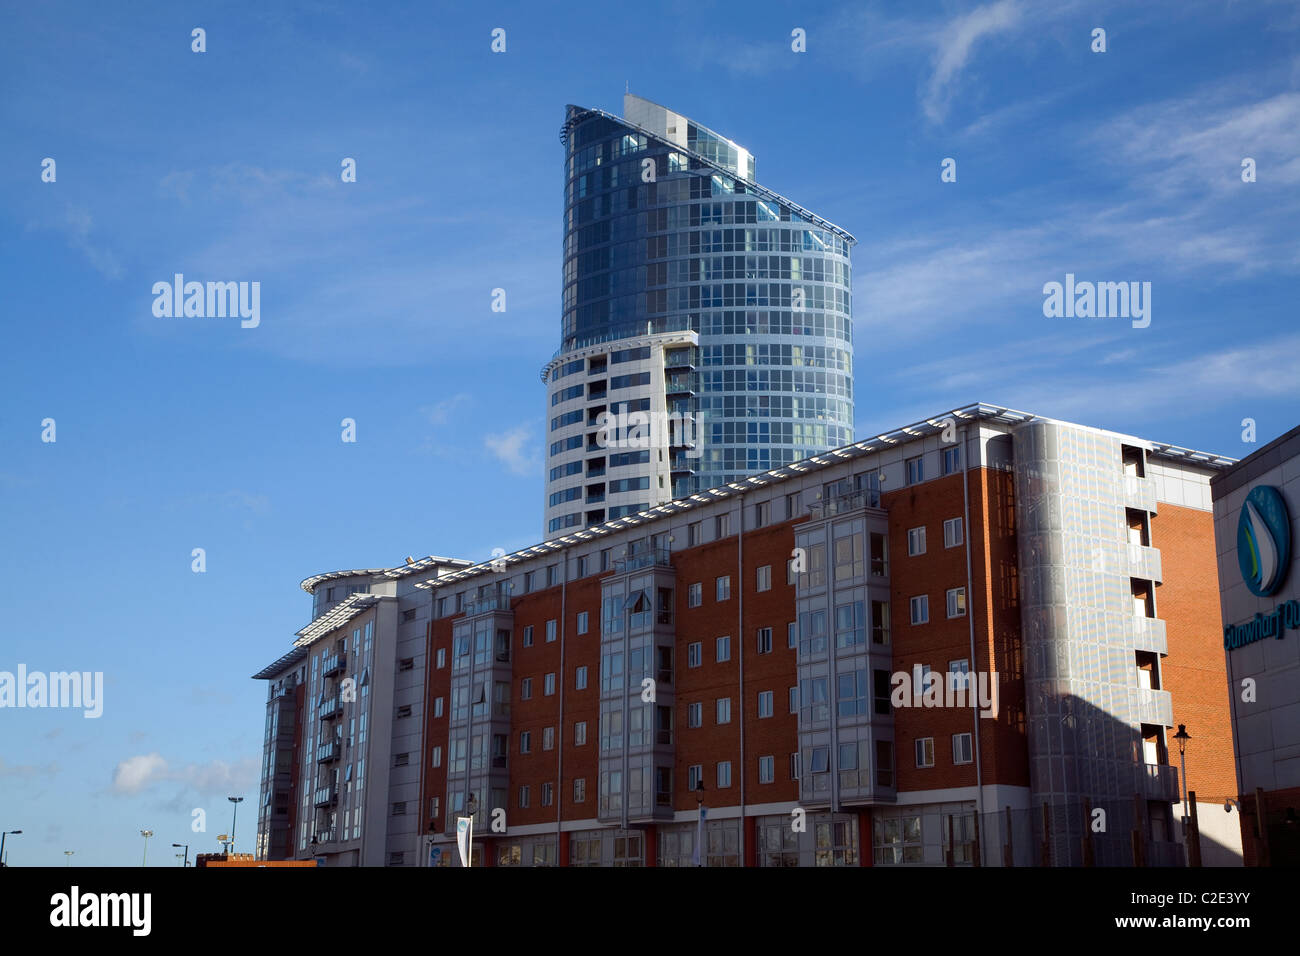 Modern architecture buildings Portsmouth Hampshire England - Stock Image